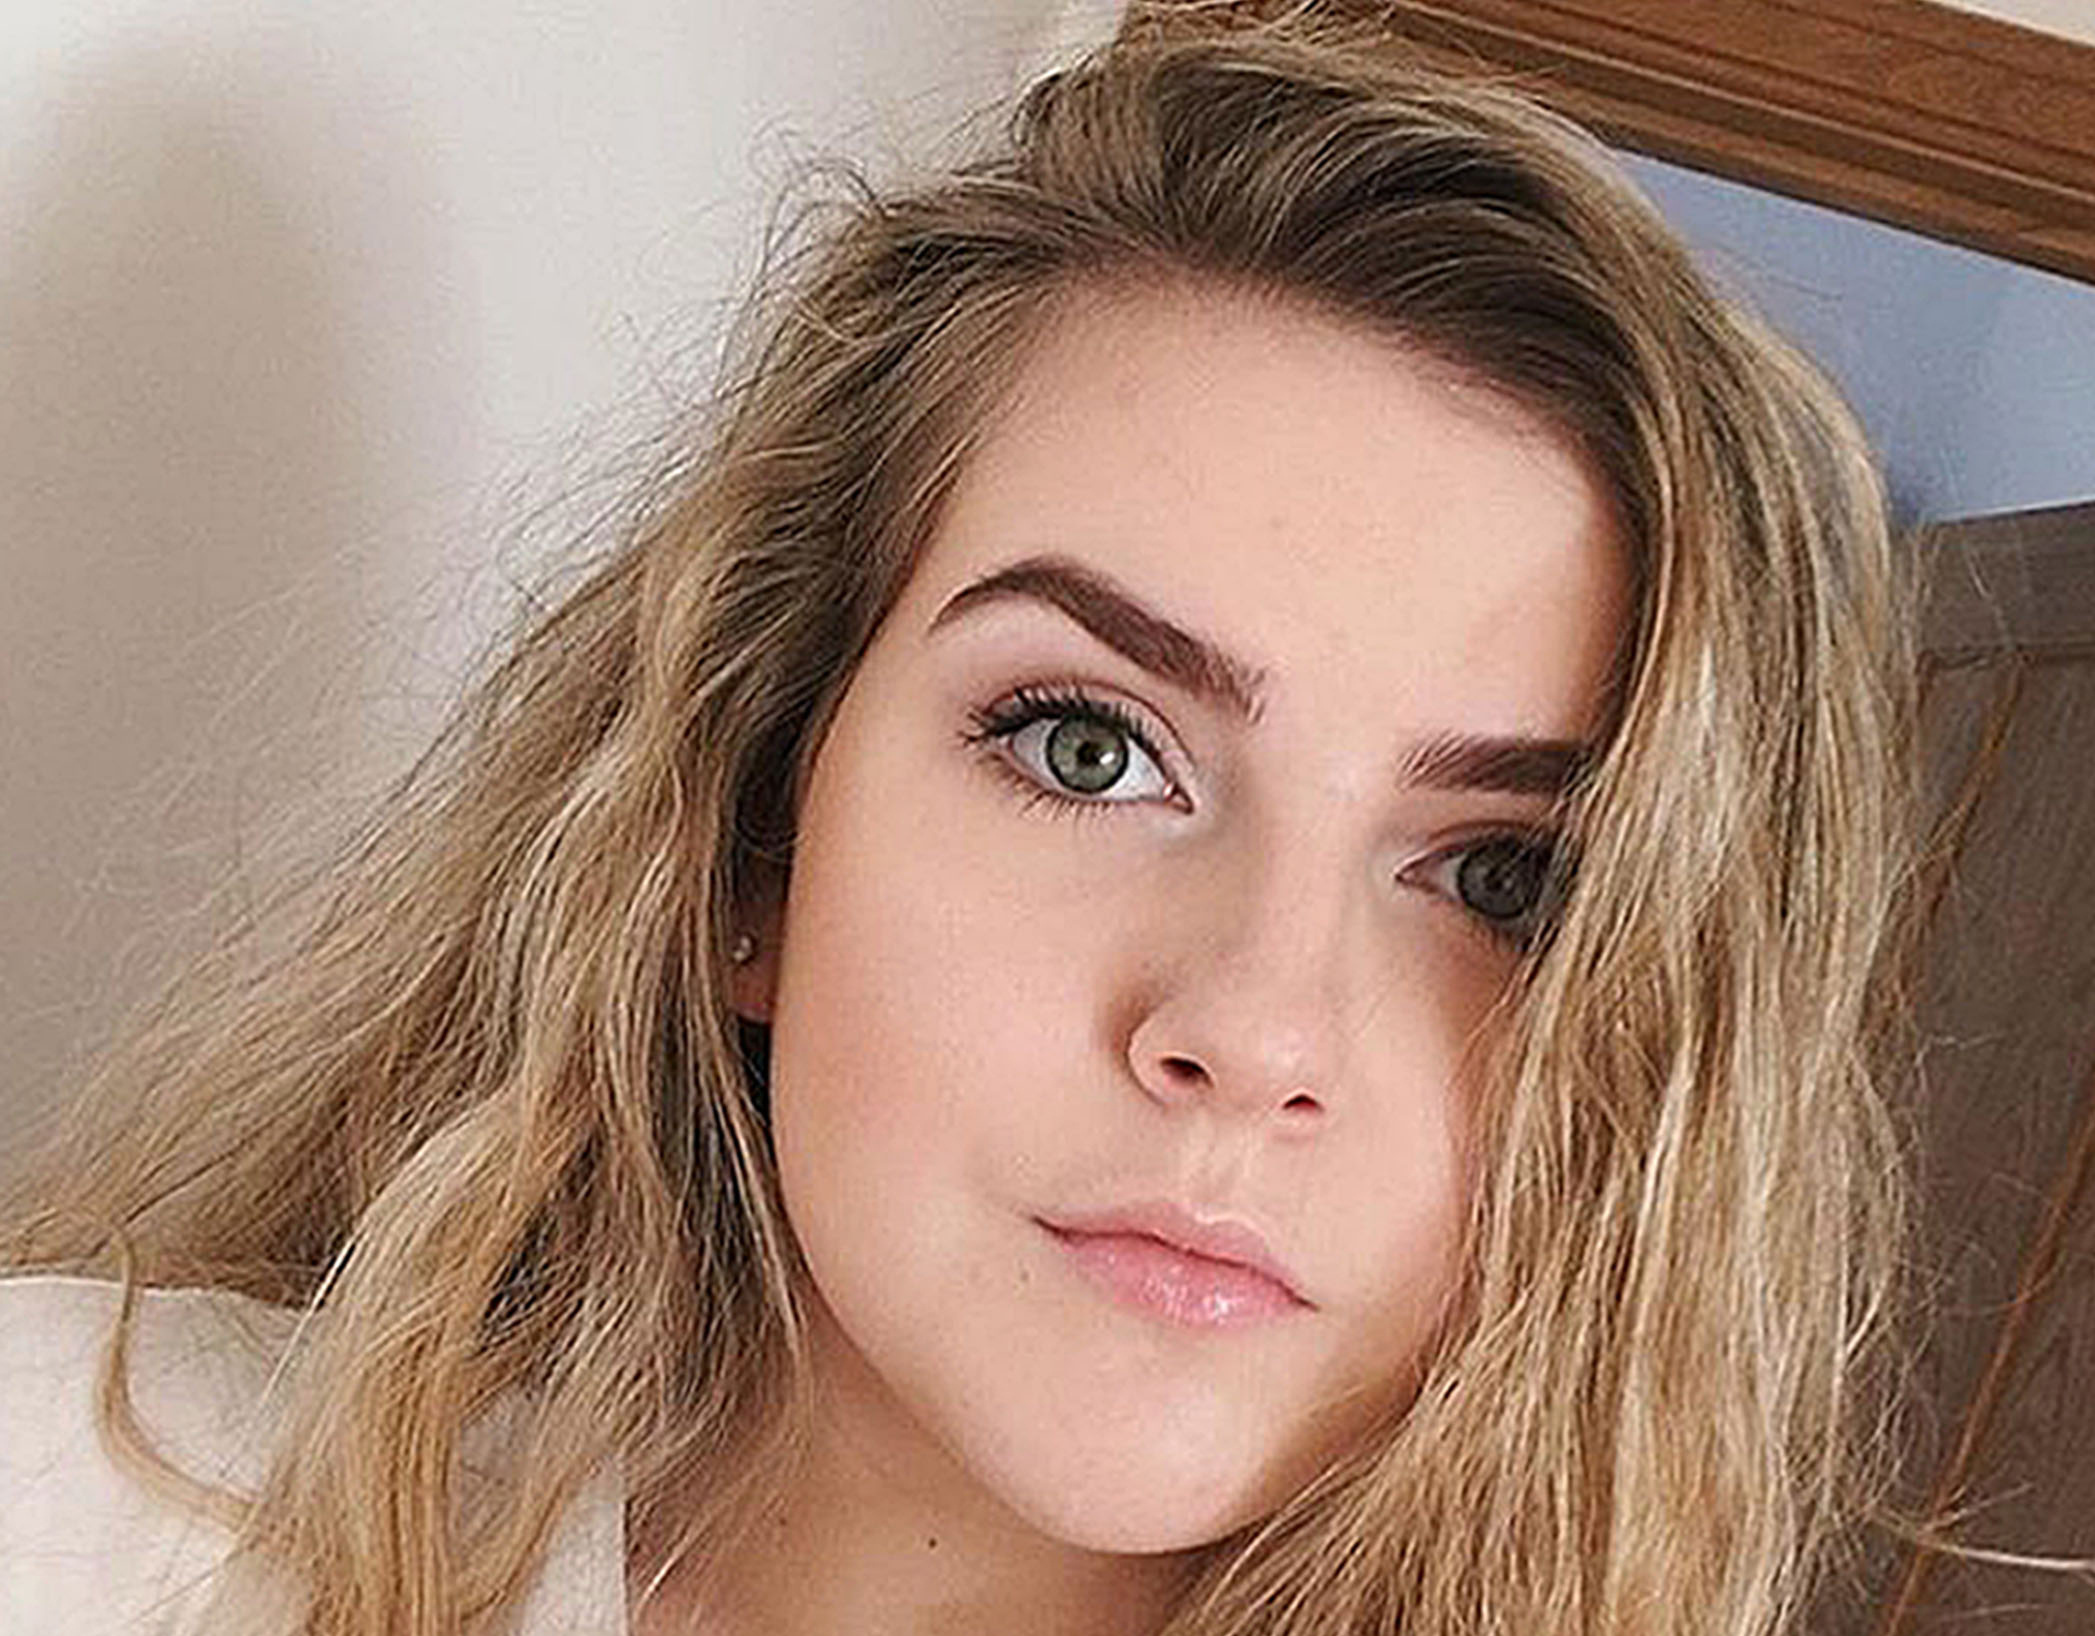 Scottish schoolgirl Eilidh, from Barra in the Outer Hebrides, was one of the the victims at the concert